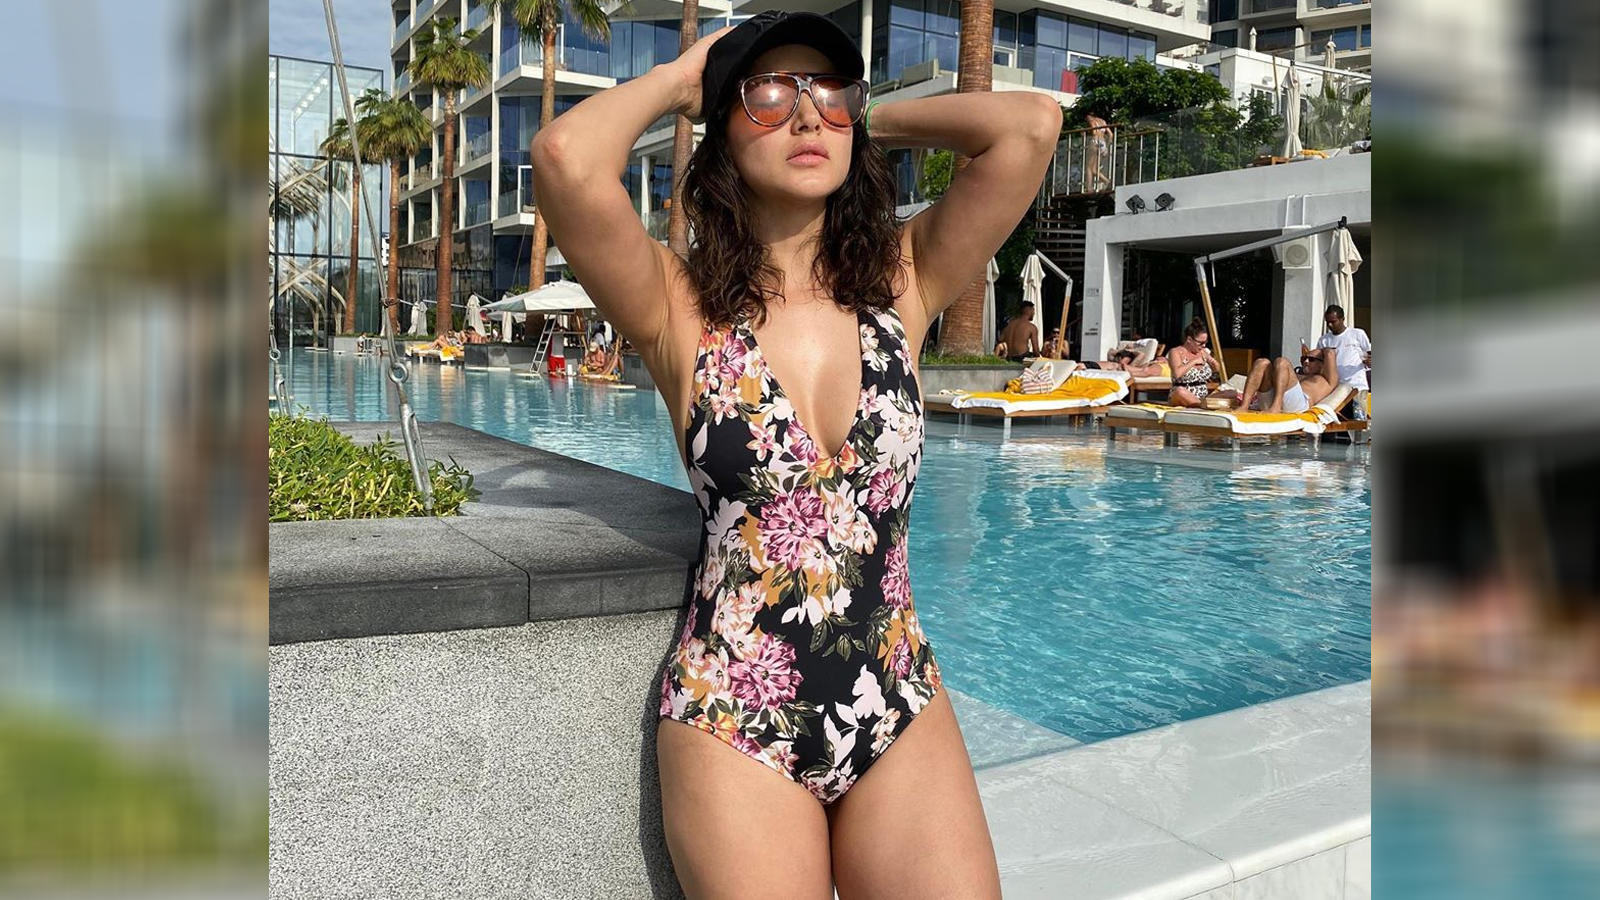 Hotness Alert! Sunny Leone sizzles in a floral swimwear, shares a picture from her Dubai vacation